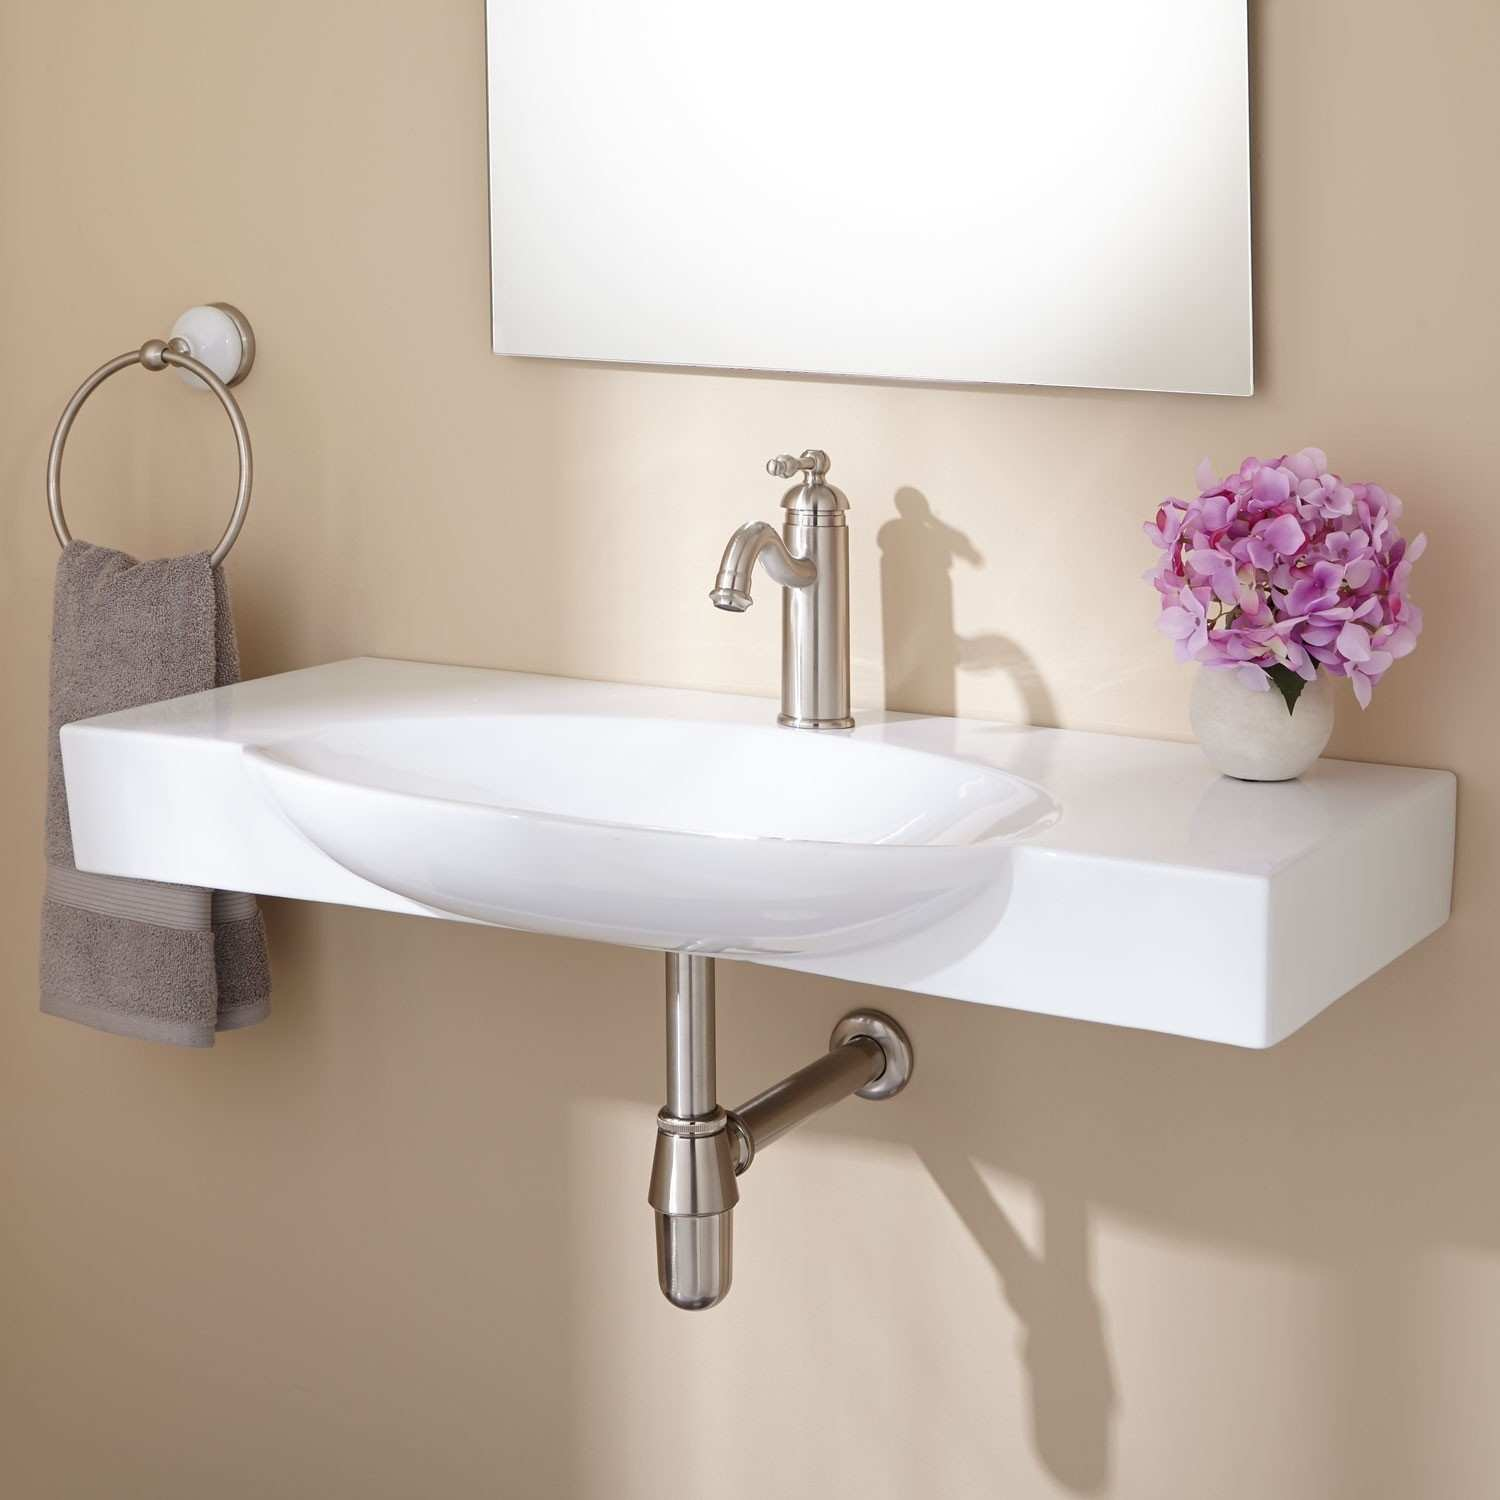 Wall Decor For Small Bathrooms Vanity With Sink And Faucet H Sink